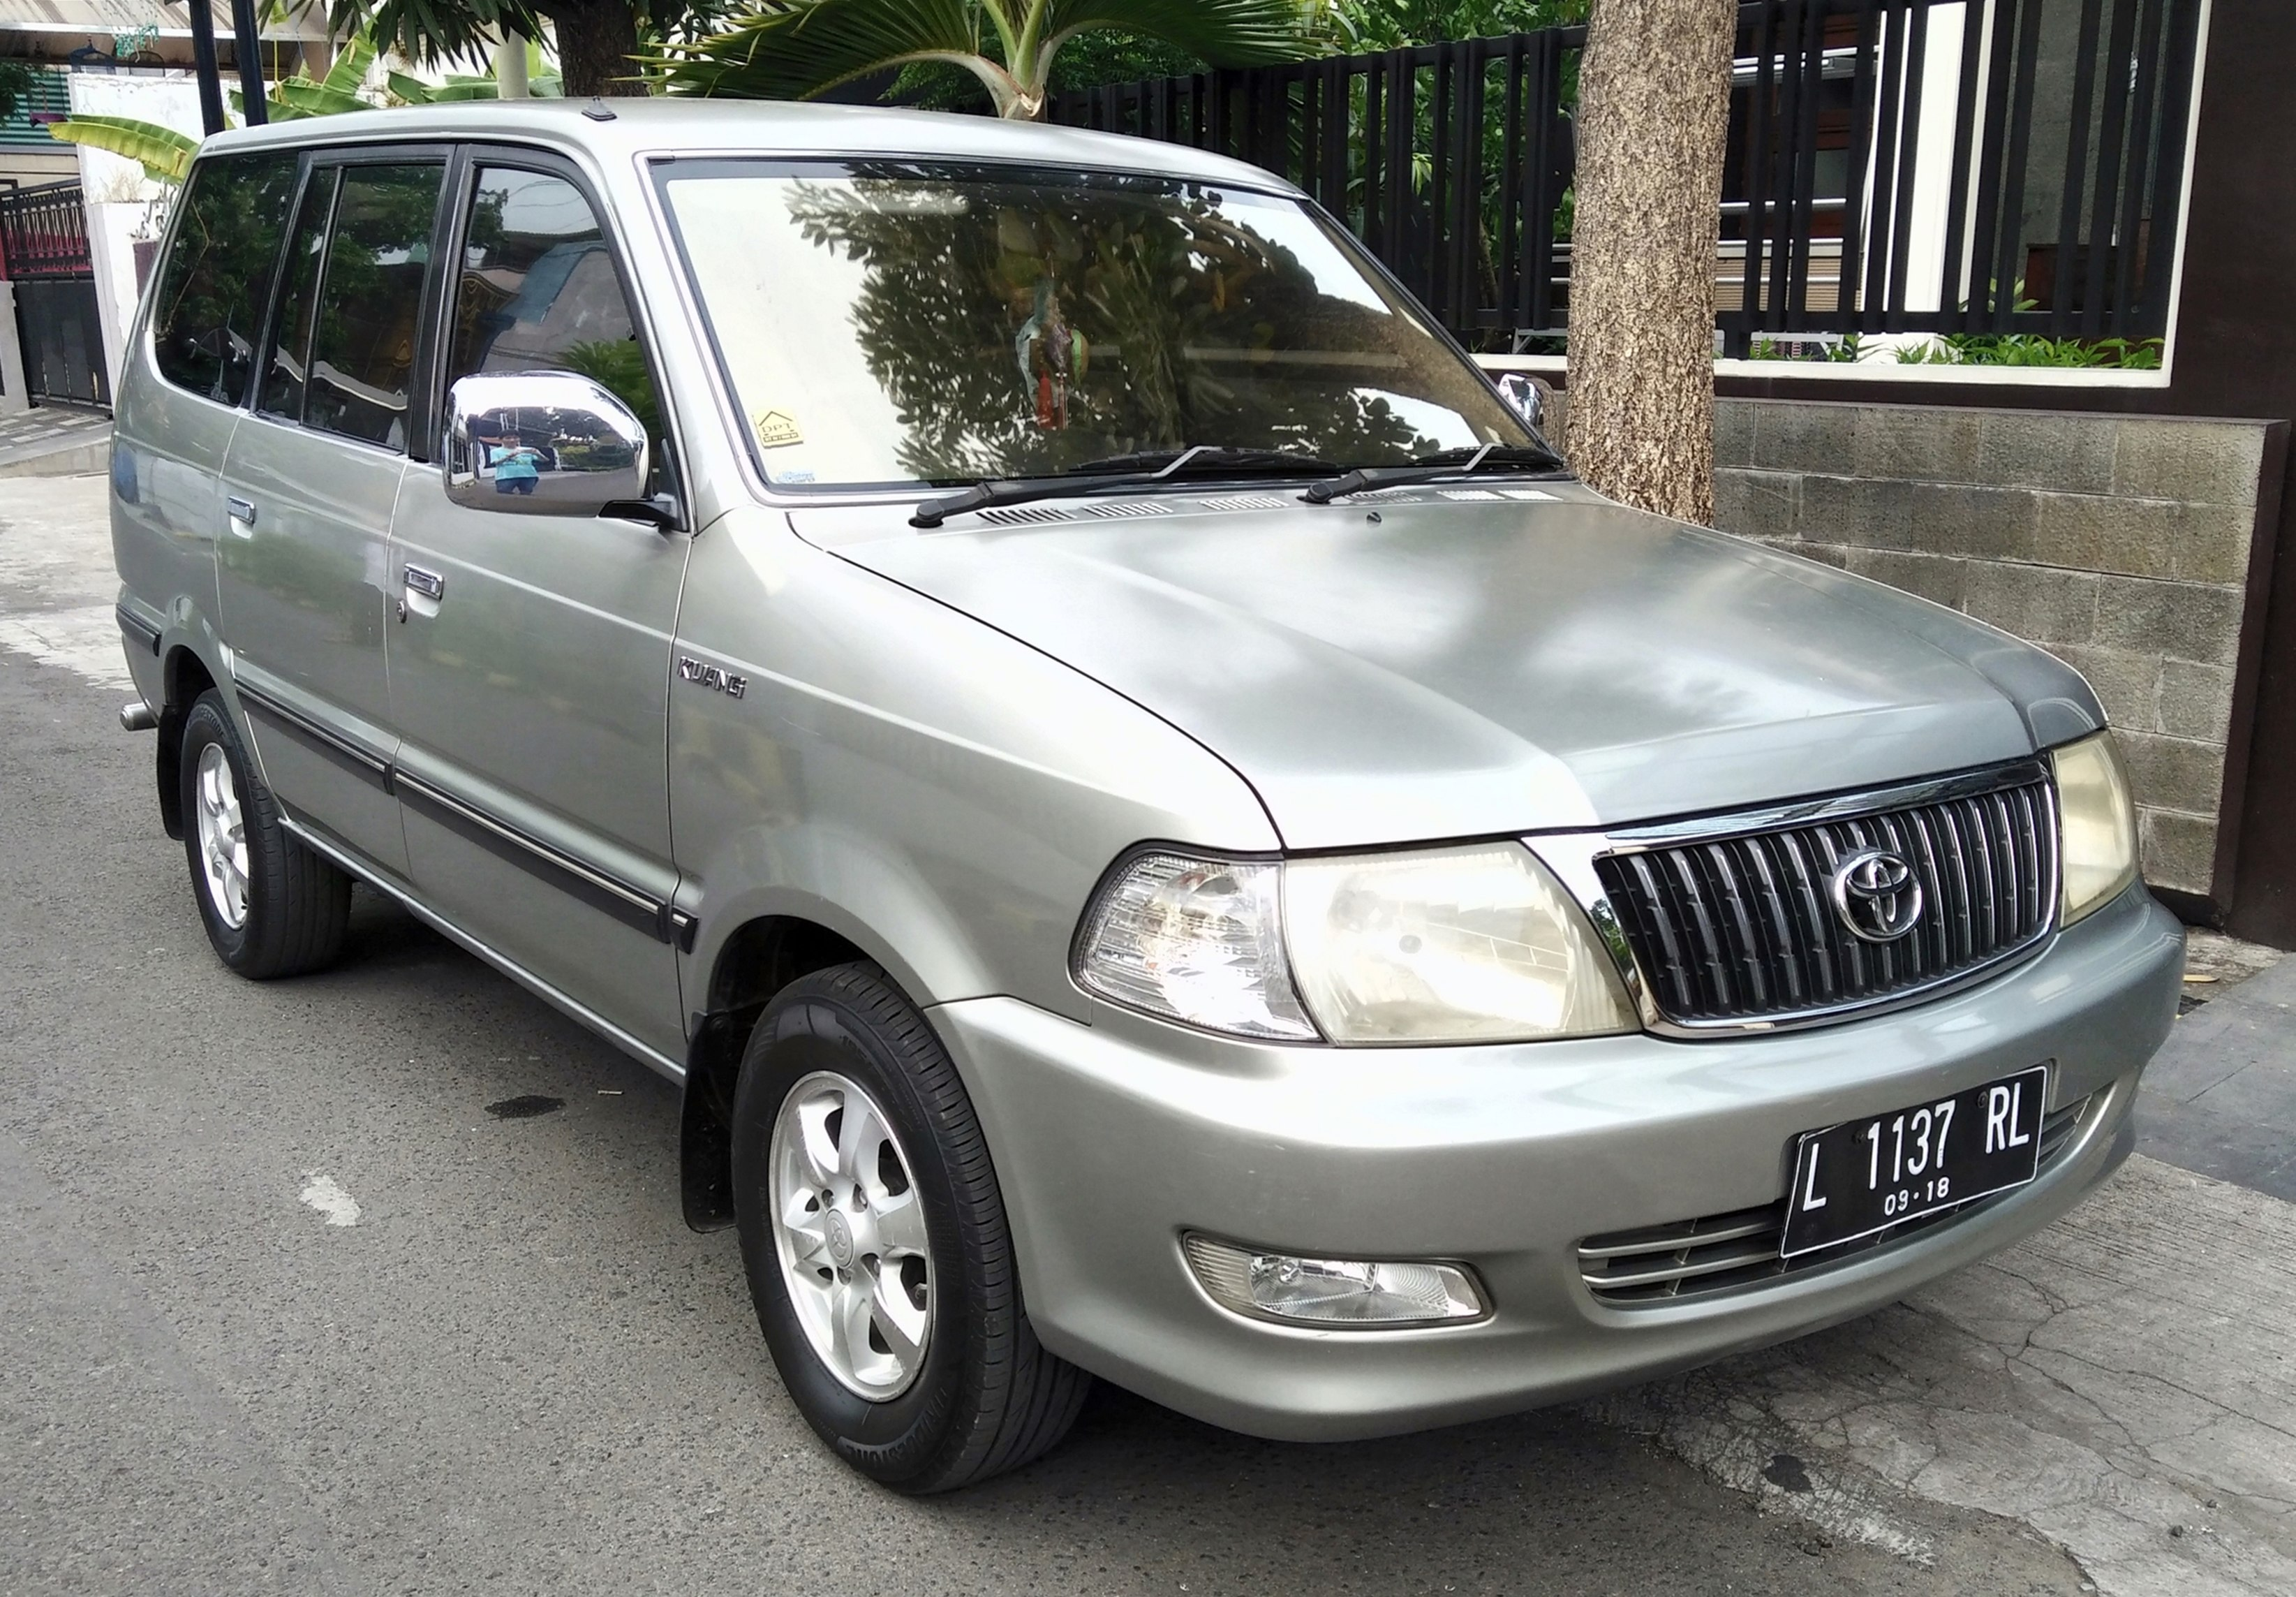 Toyota Tamaraw FX - The complete information and online sale